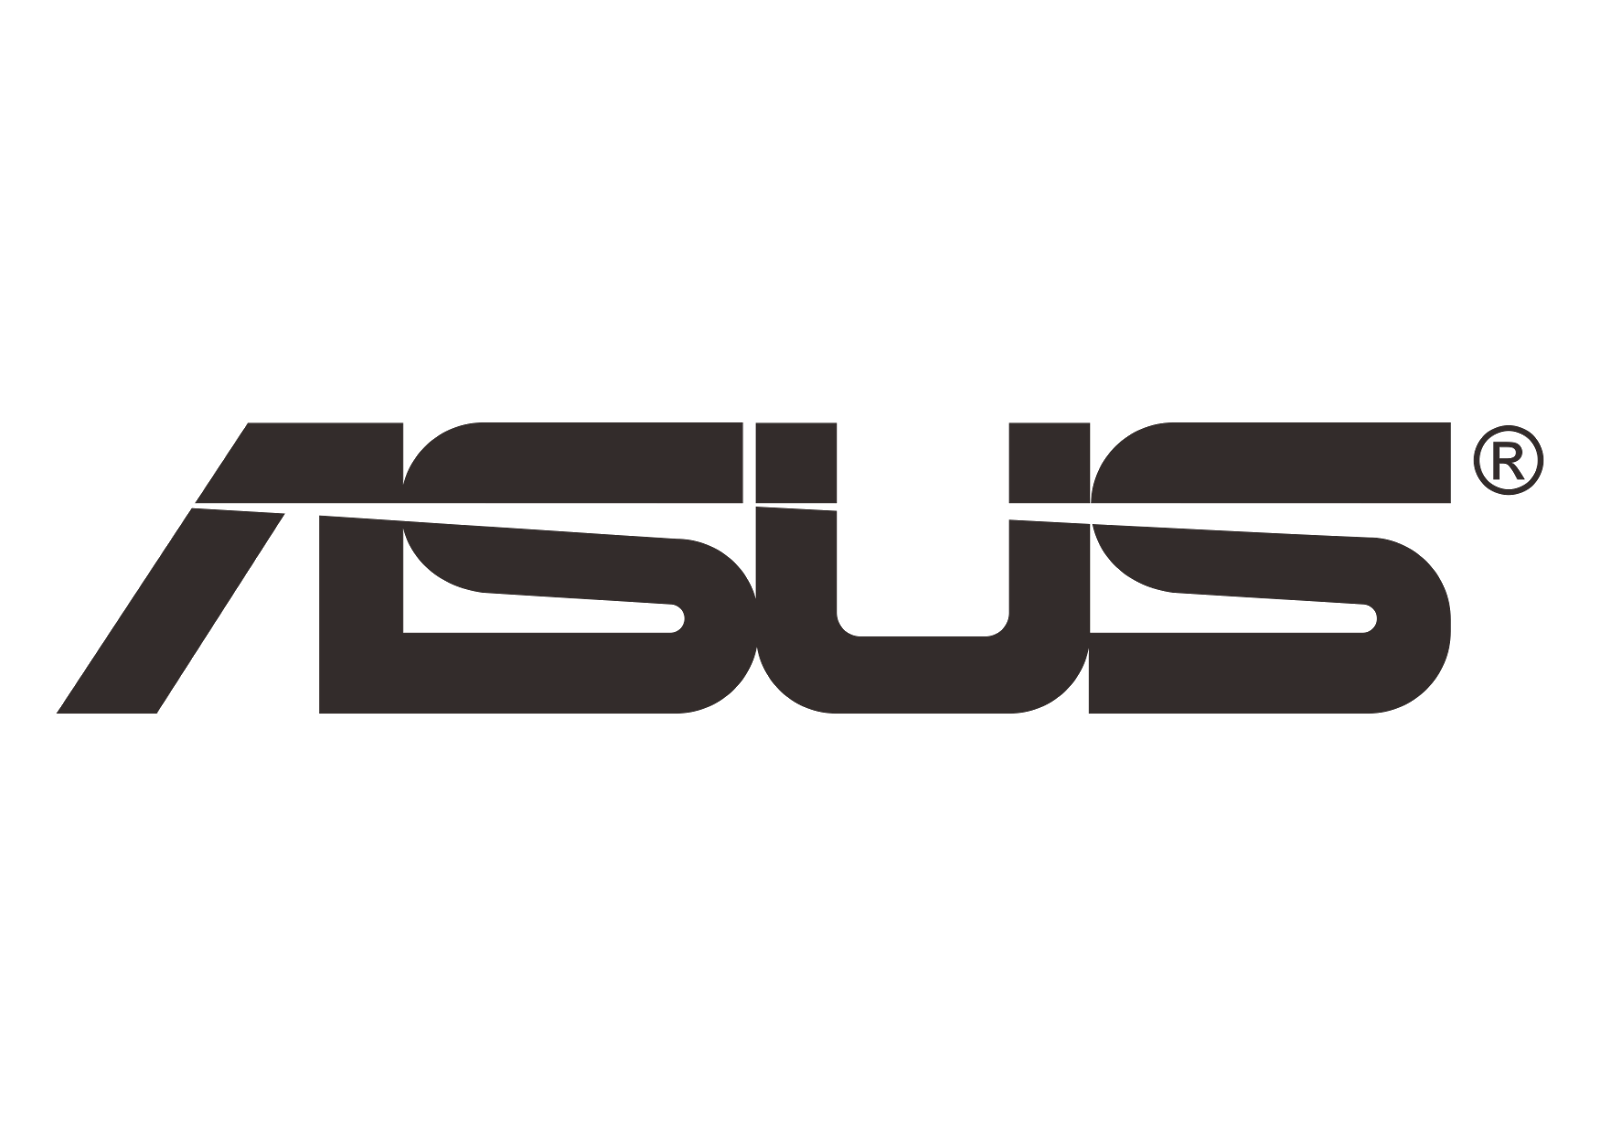 logo ordinateurs asus